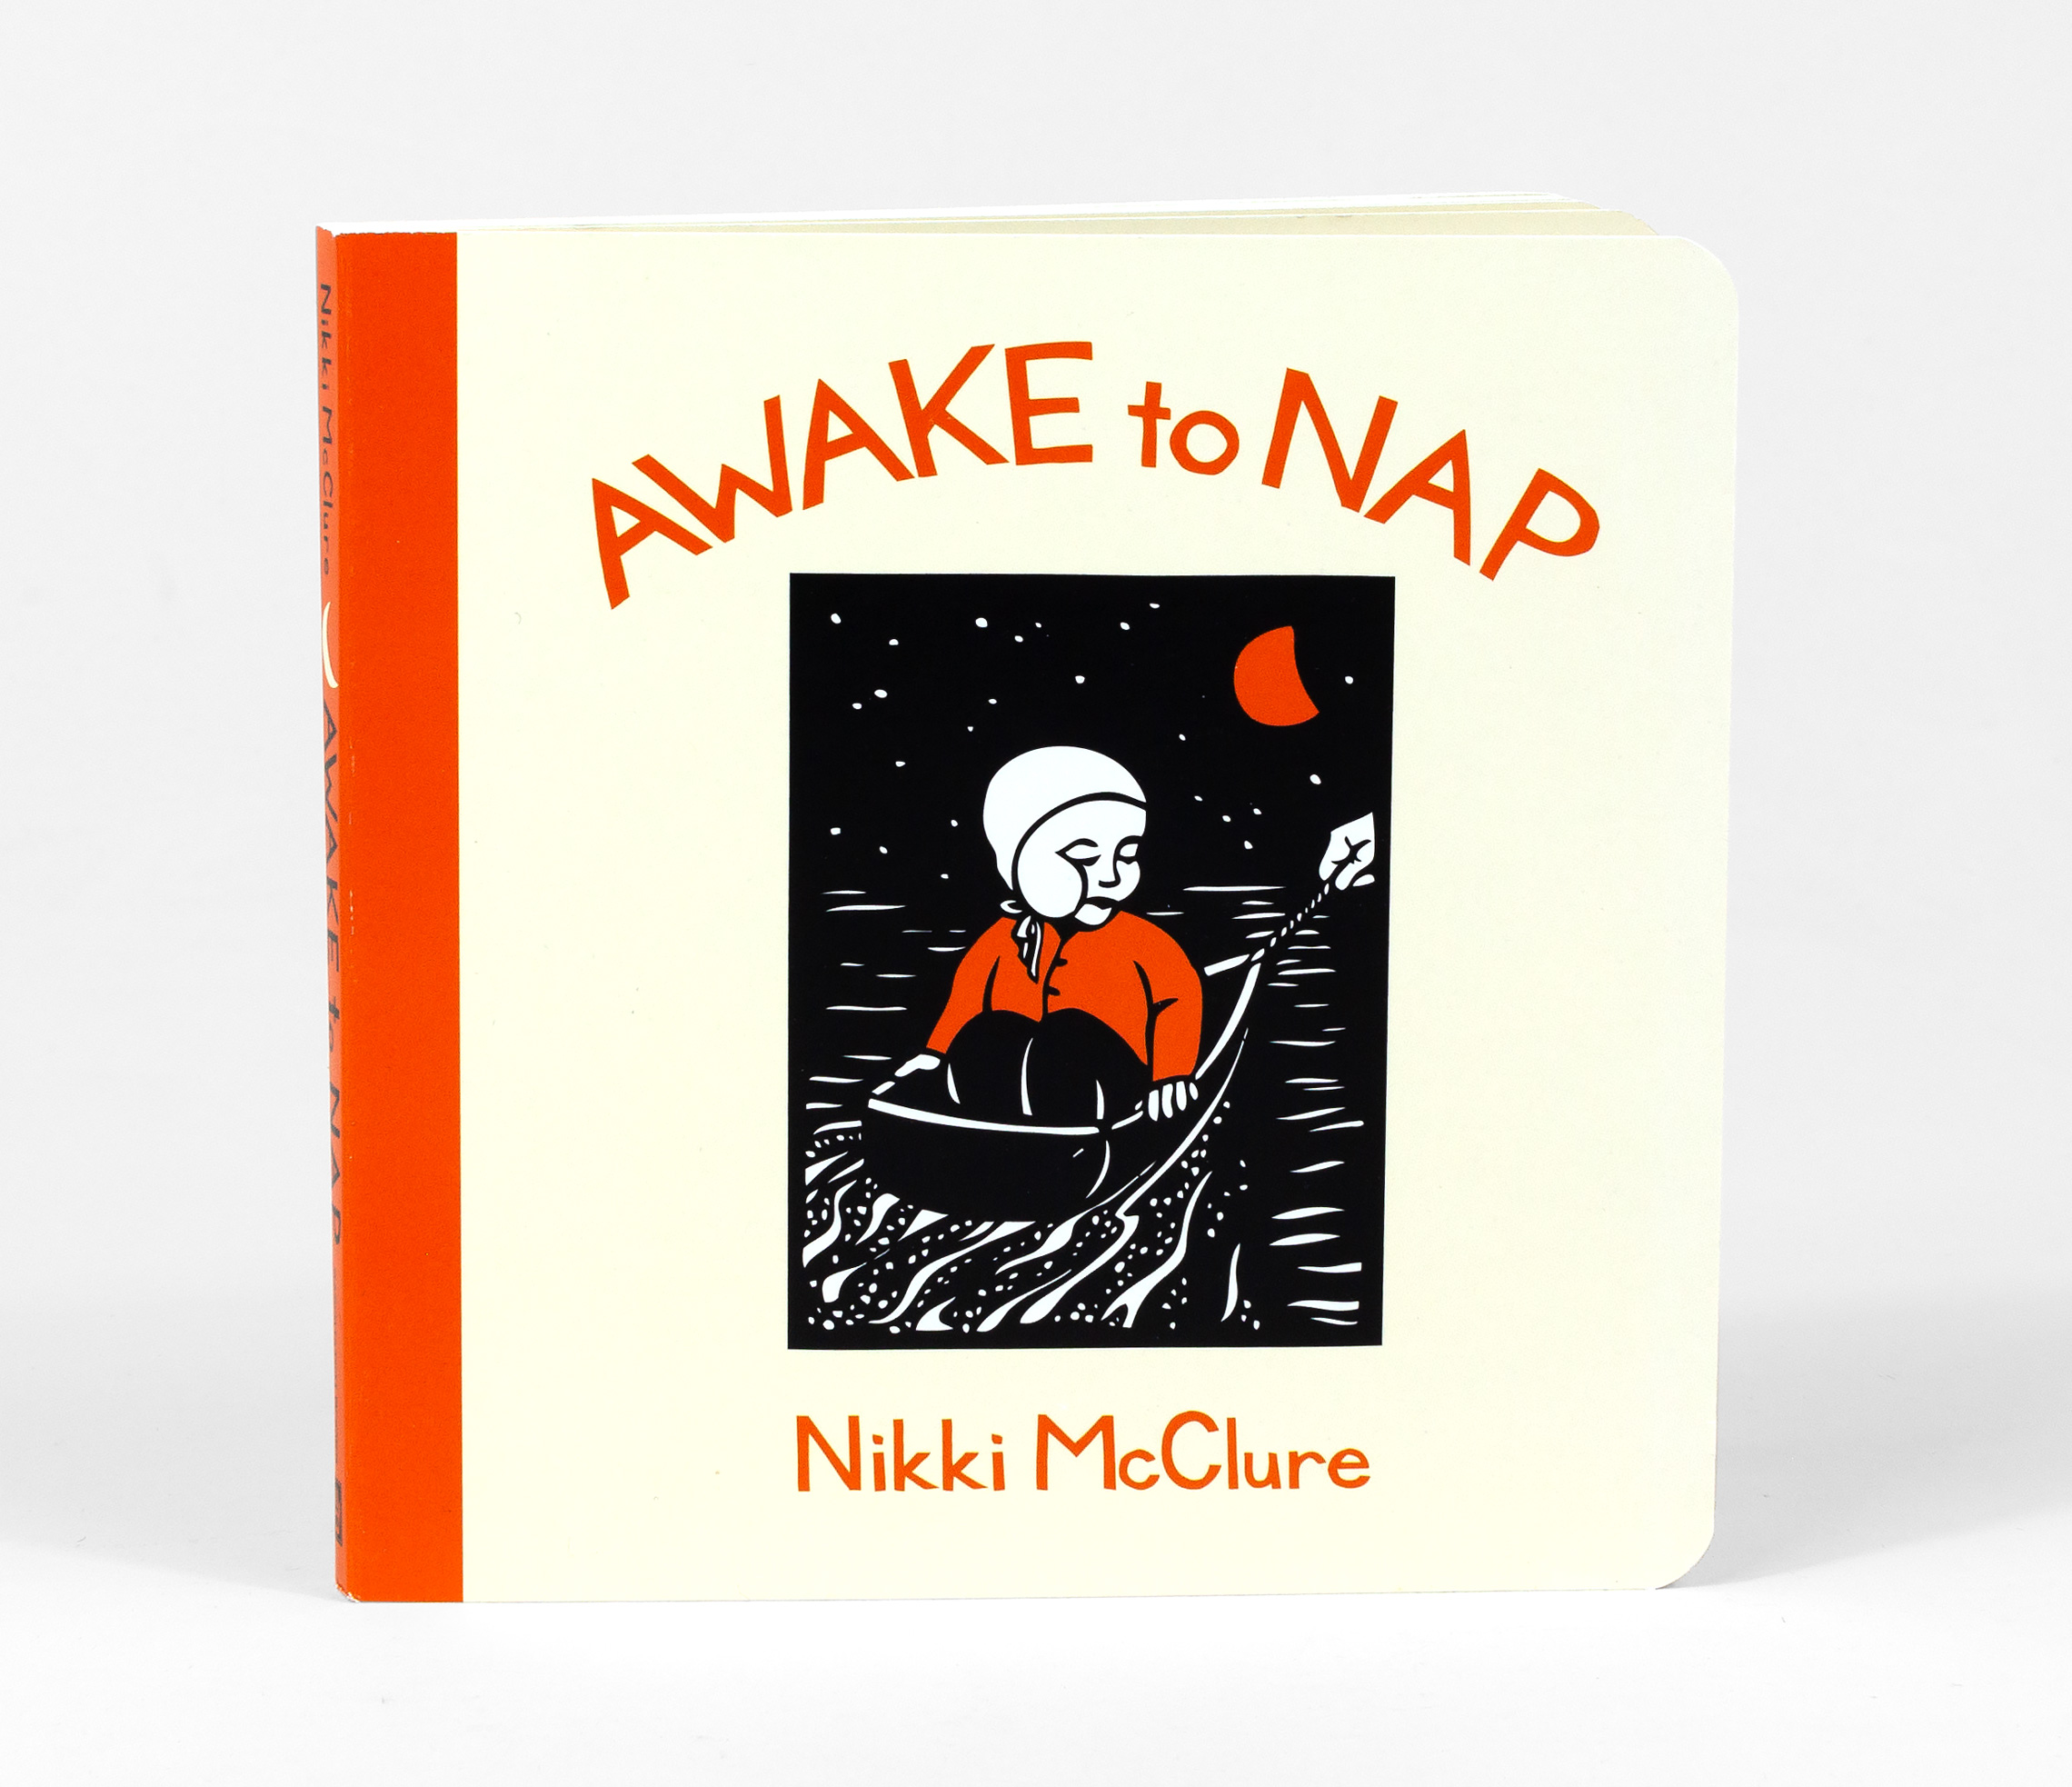 Nikki McClure - Awake to Nap, book